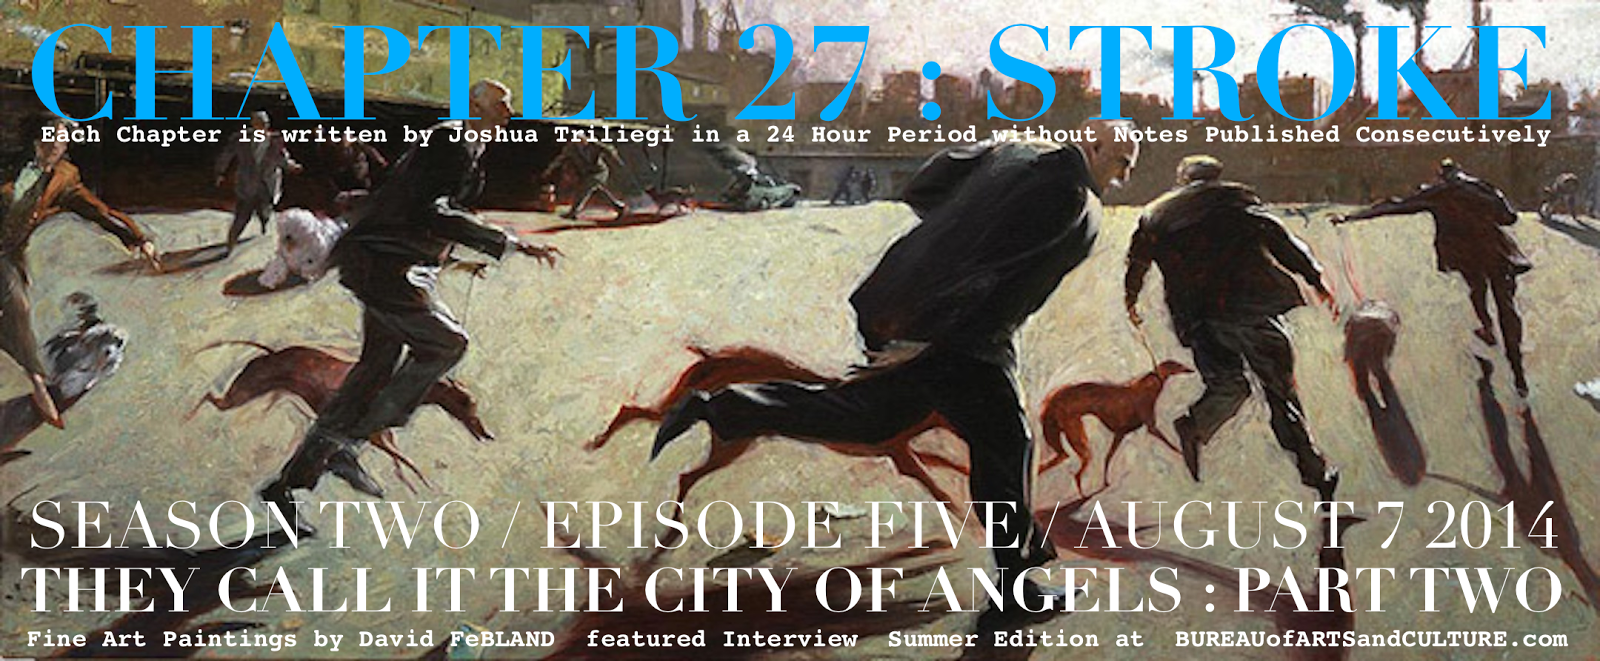 THEY CALL IT THE CITY OF ANGELS  New Fiction By The BUREAU Editor Joshua TRILIEGI Each Chapter is Written in a Twenty - Four Hour Period without Notes Published Consecutively  SEASON TWO / EPISODE FIVE / CHAPTER 27   STROKE